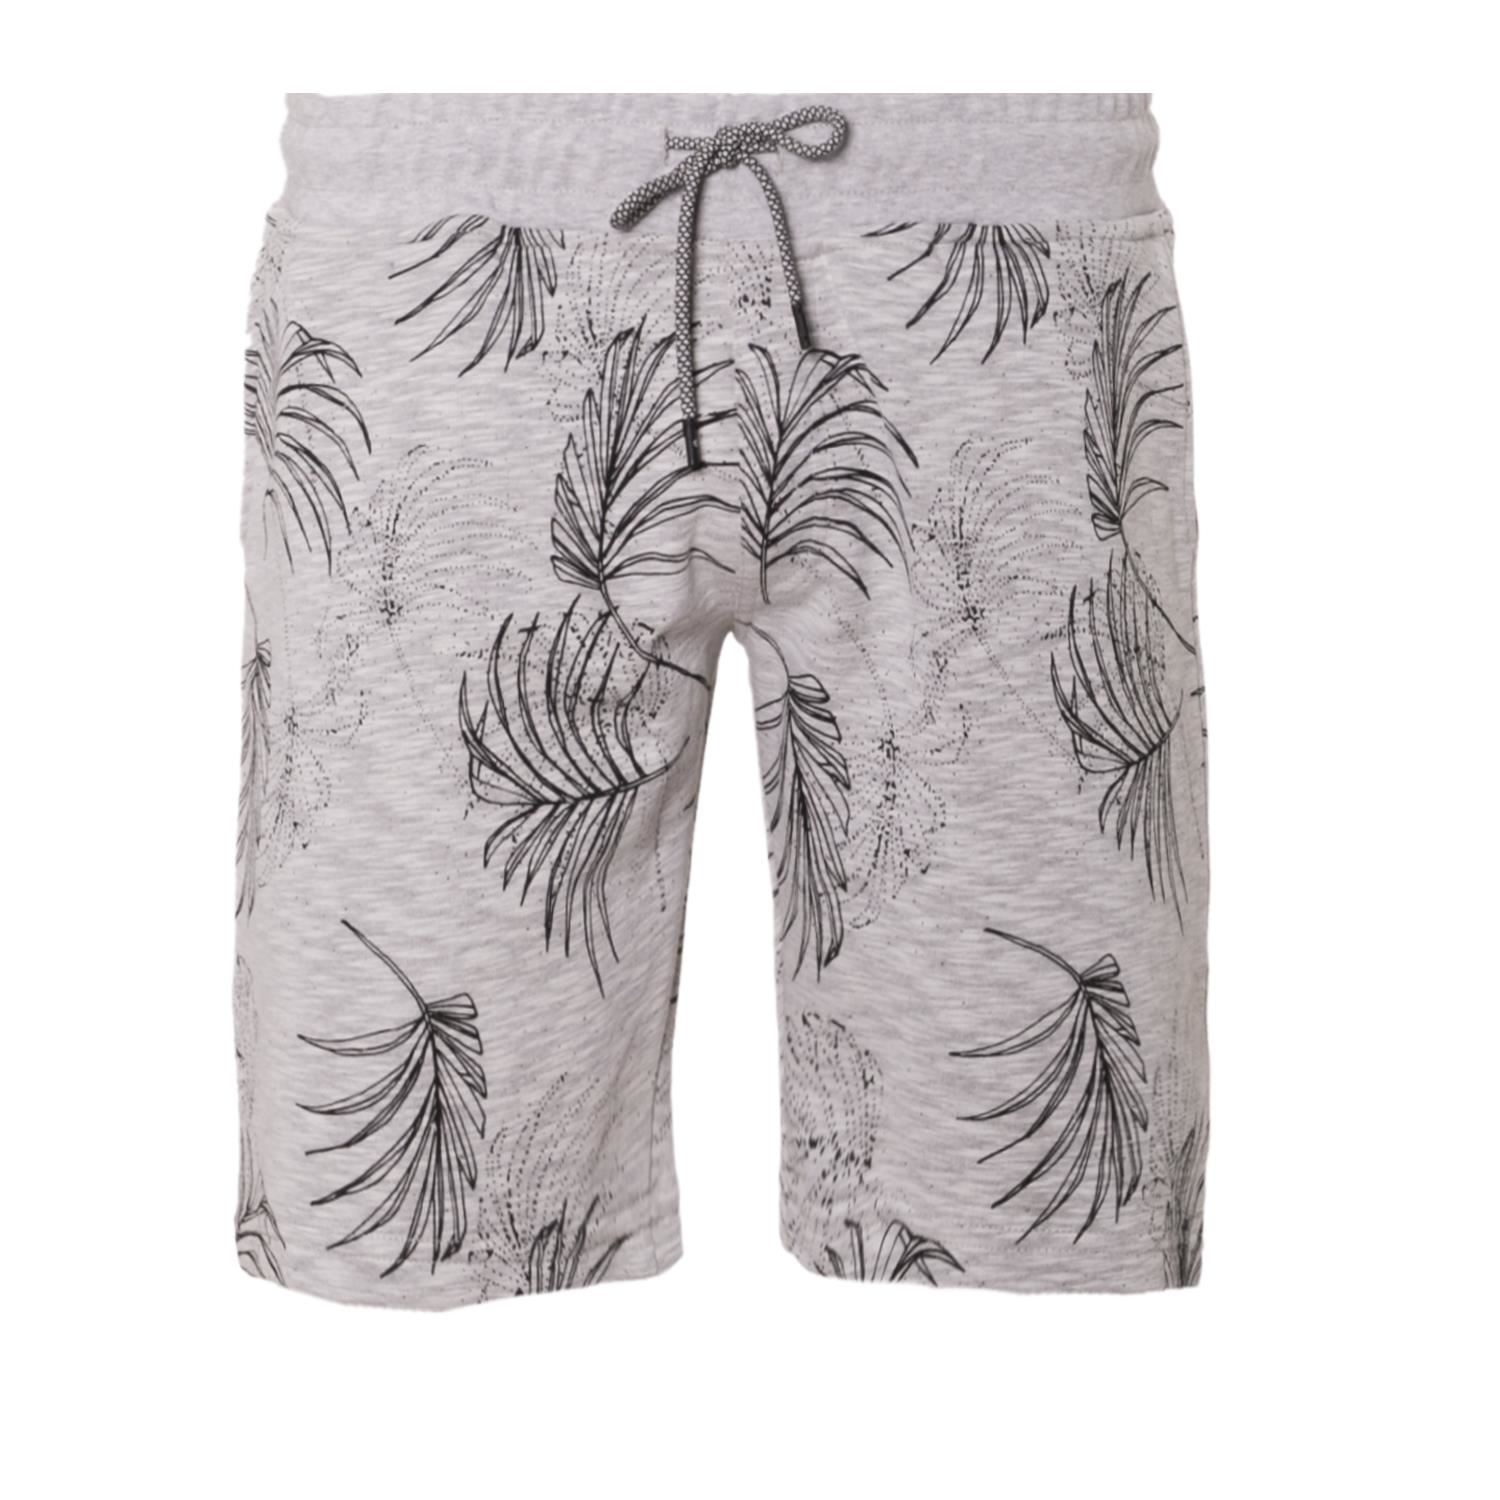 Korte Broek Sweatstof Dames.Brunotti Azel Grijs Heren Shorts Brunotti Online Shop